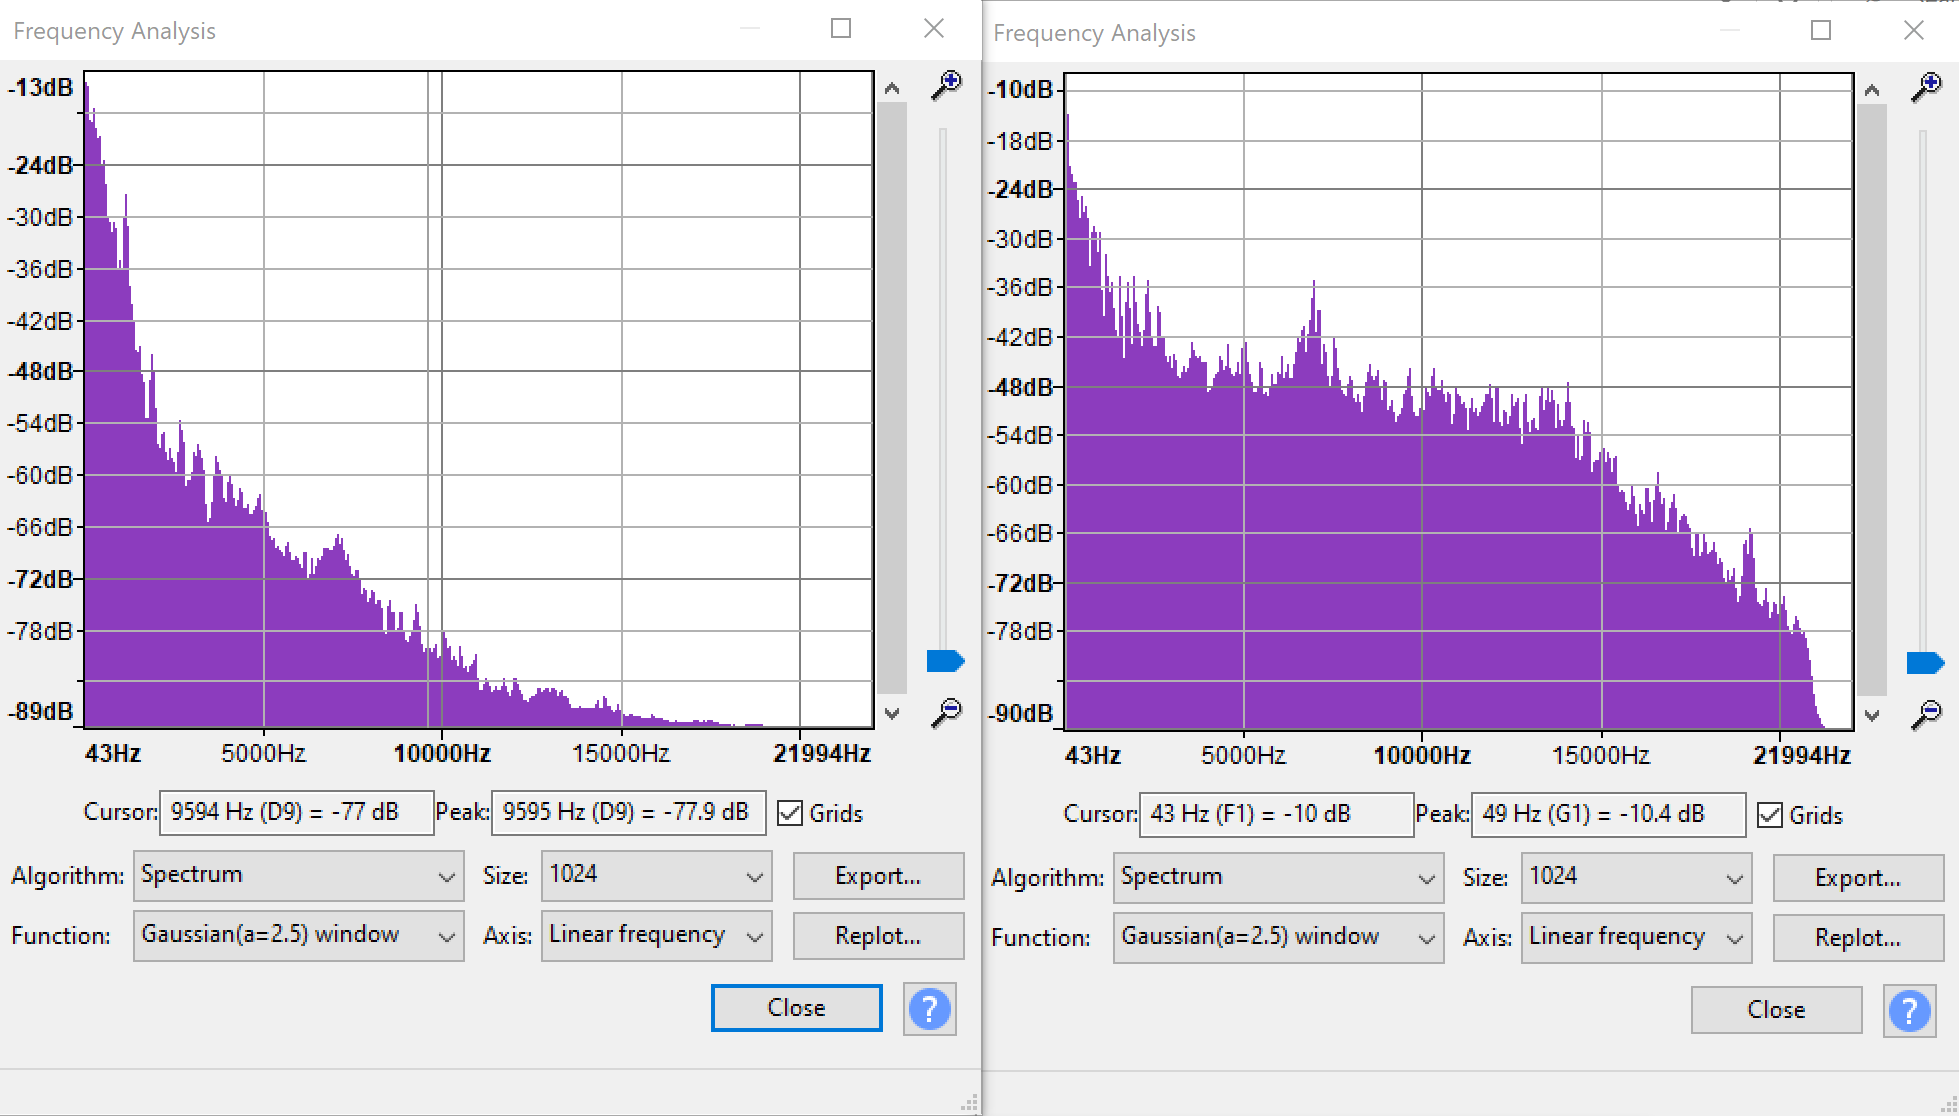 Relative loudness by frequency for two tracks side by side